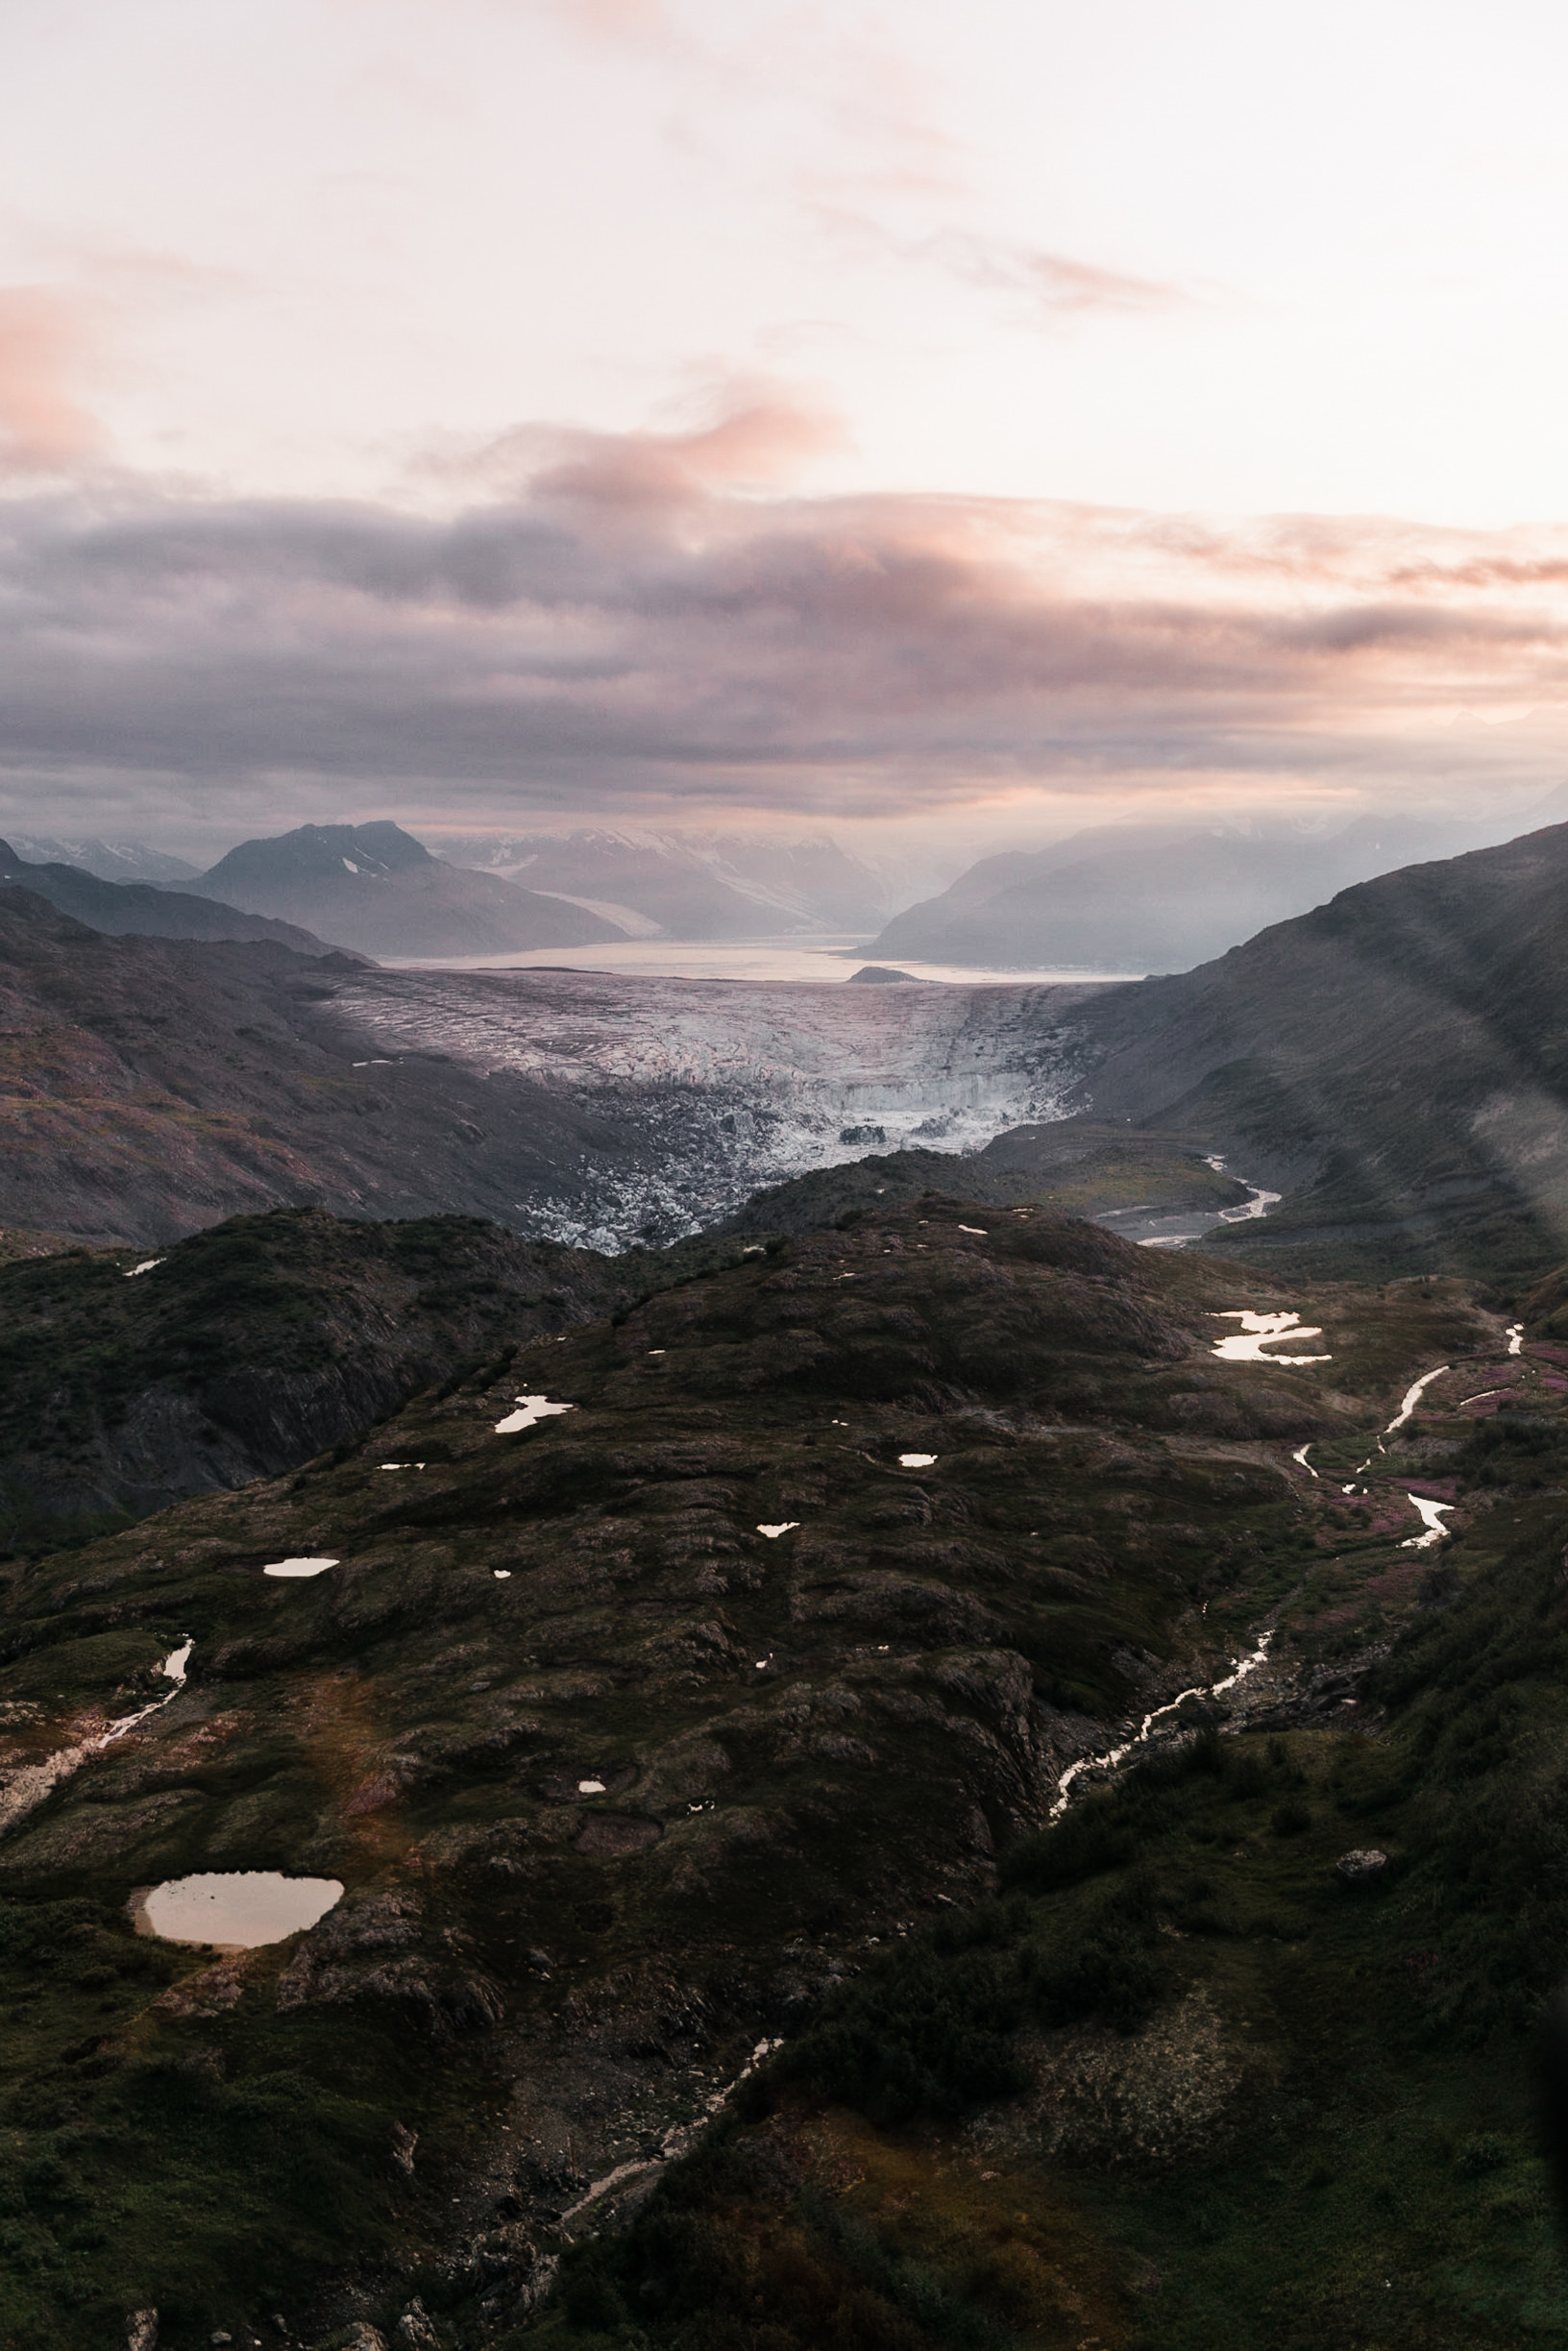 Aerial Photography from Helicopters and Airplanes | How to get epic photos on your flight seeing tour in Valdez, Alaska | The Hearnes Adventure Photography